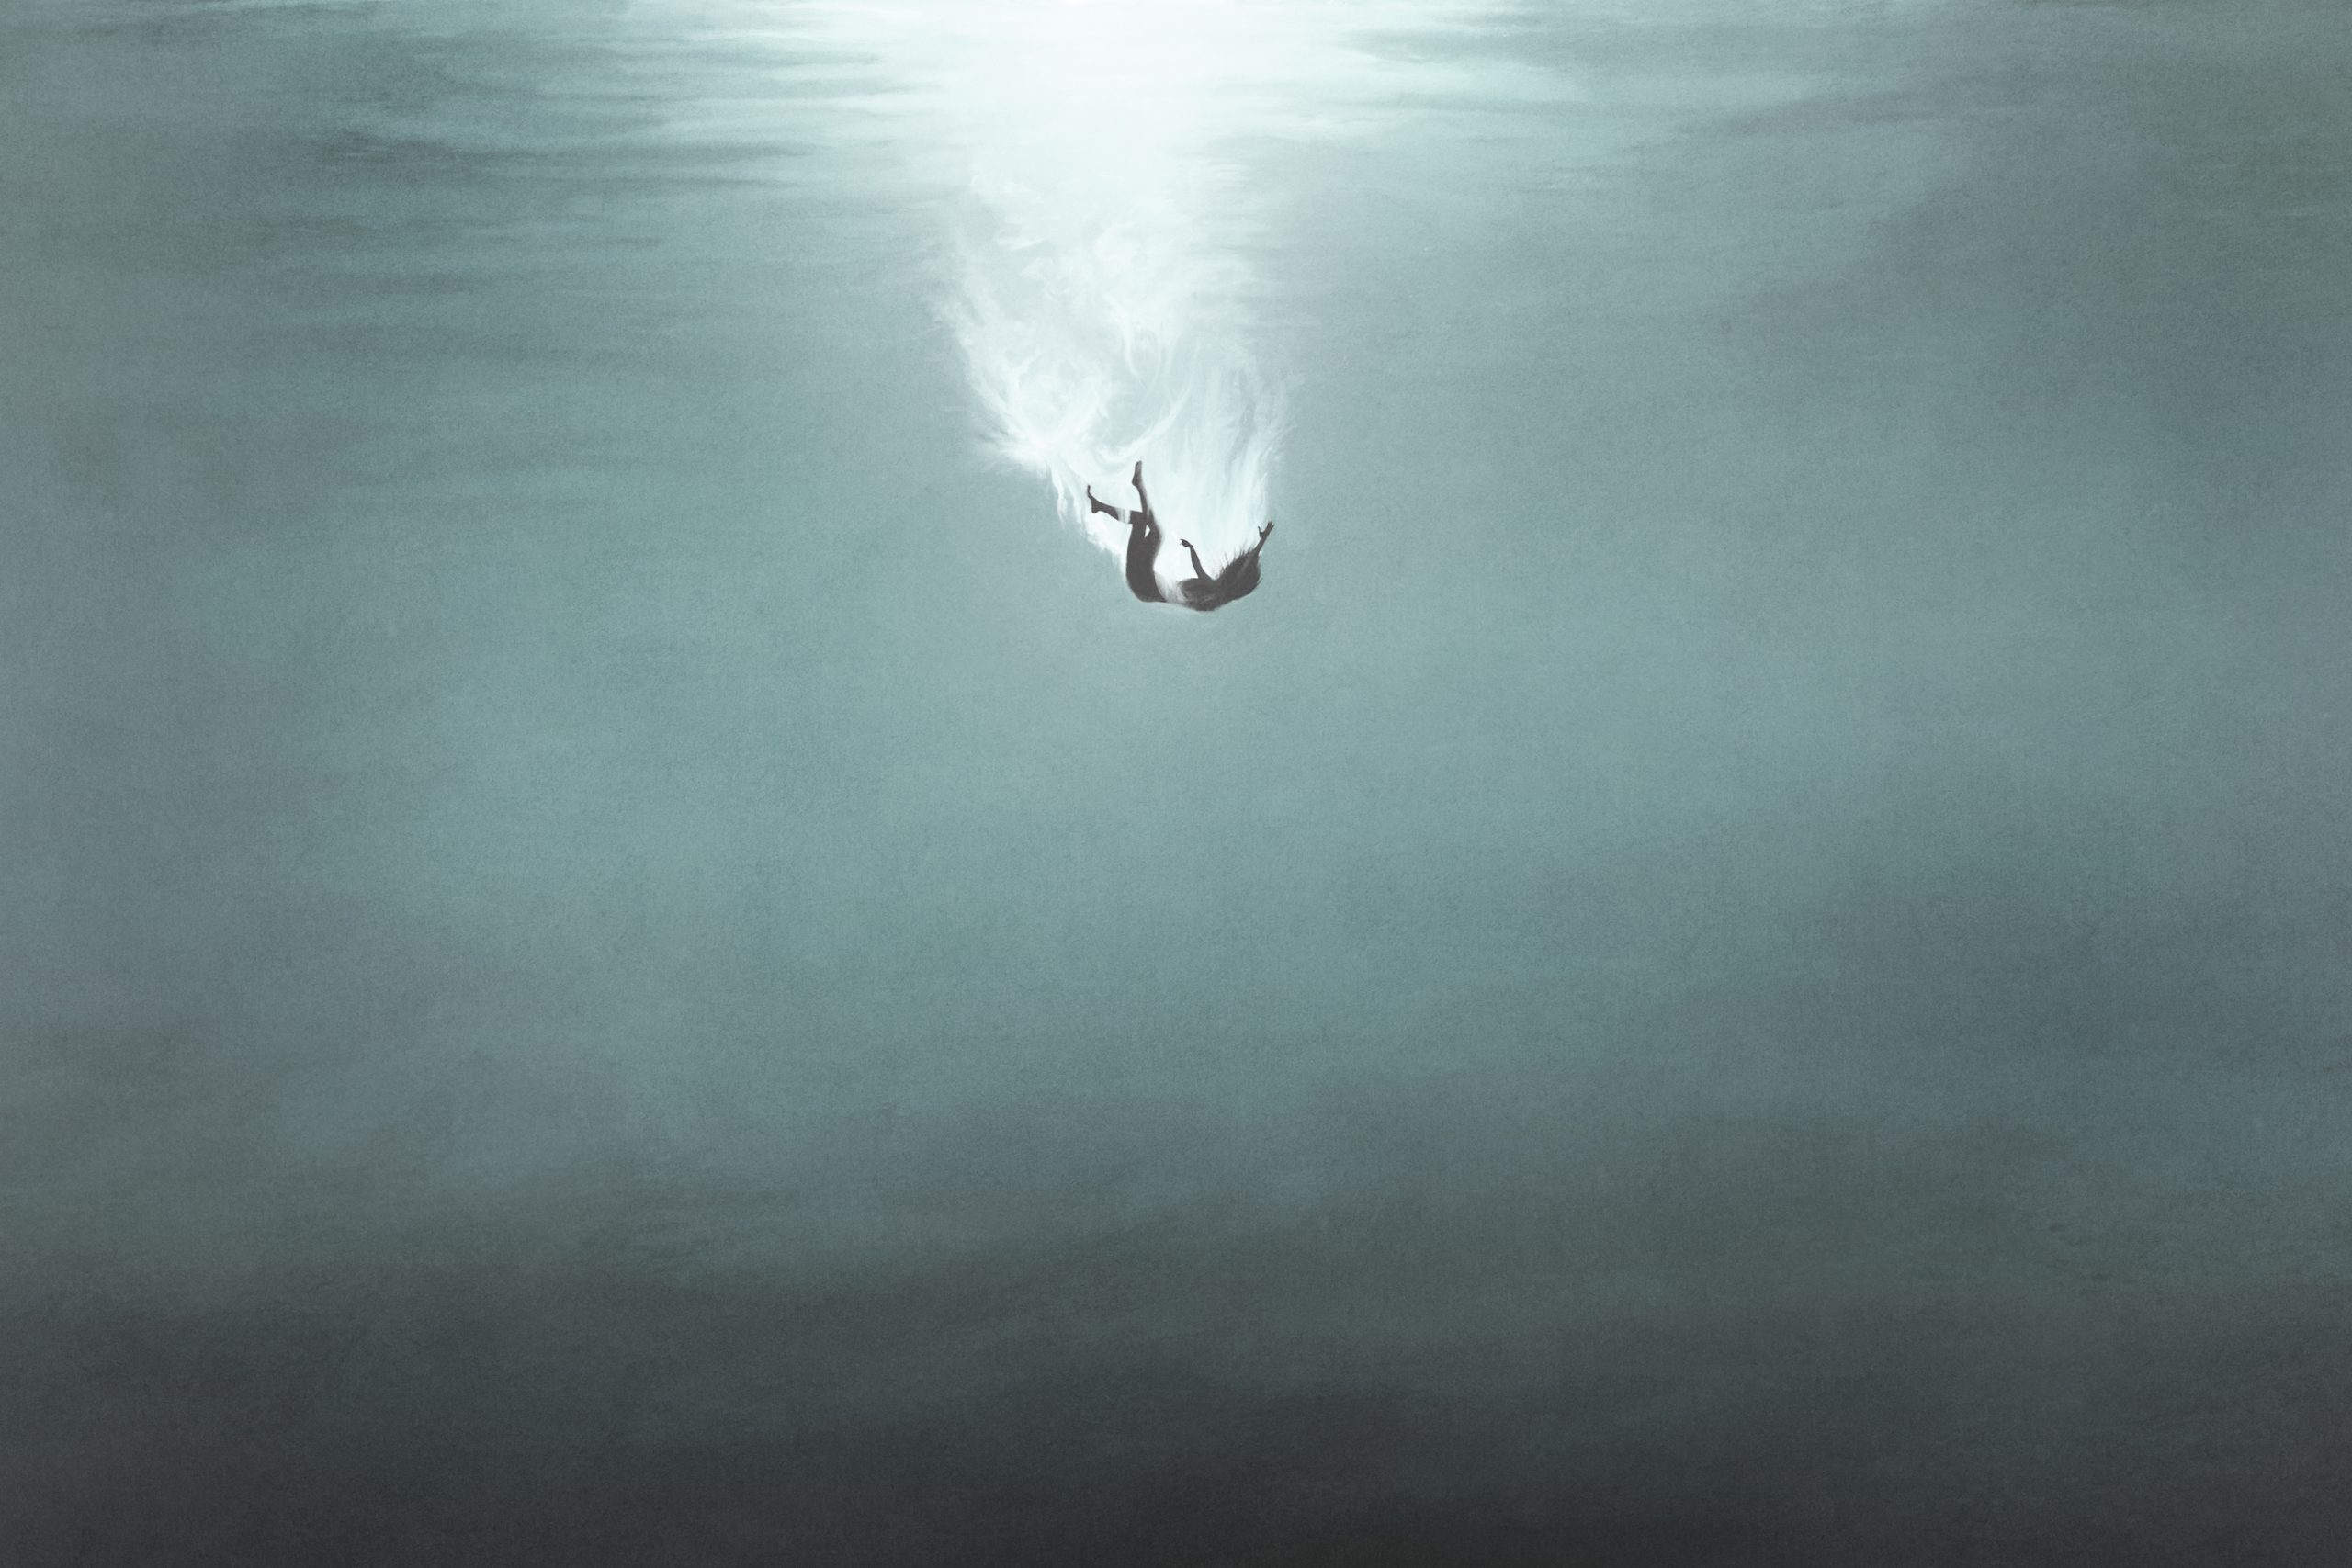 Sinking into life: the tragedy of our lost philosophy